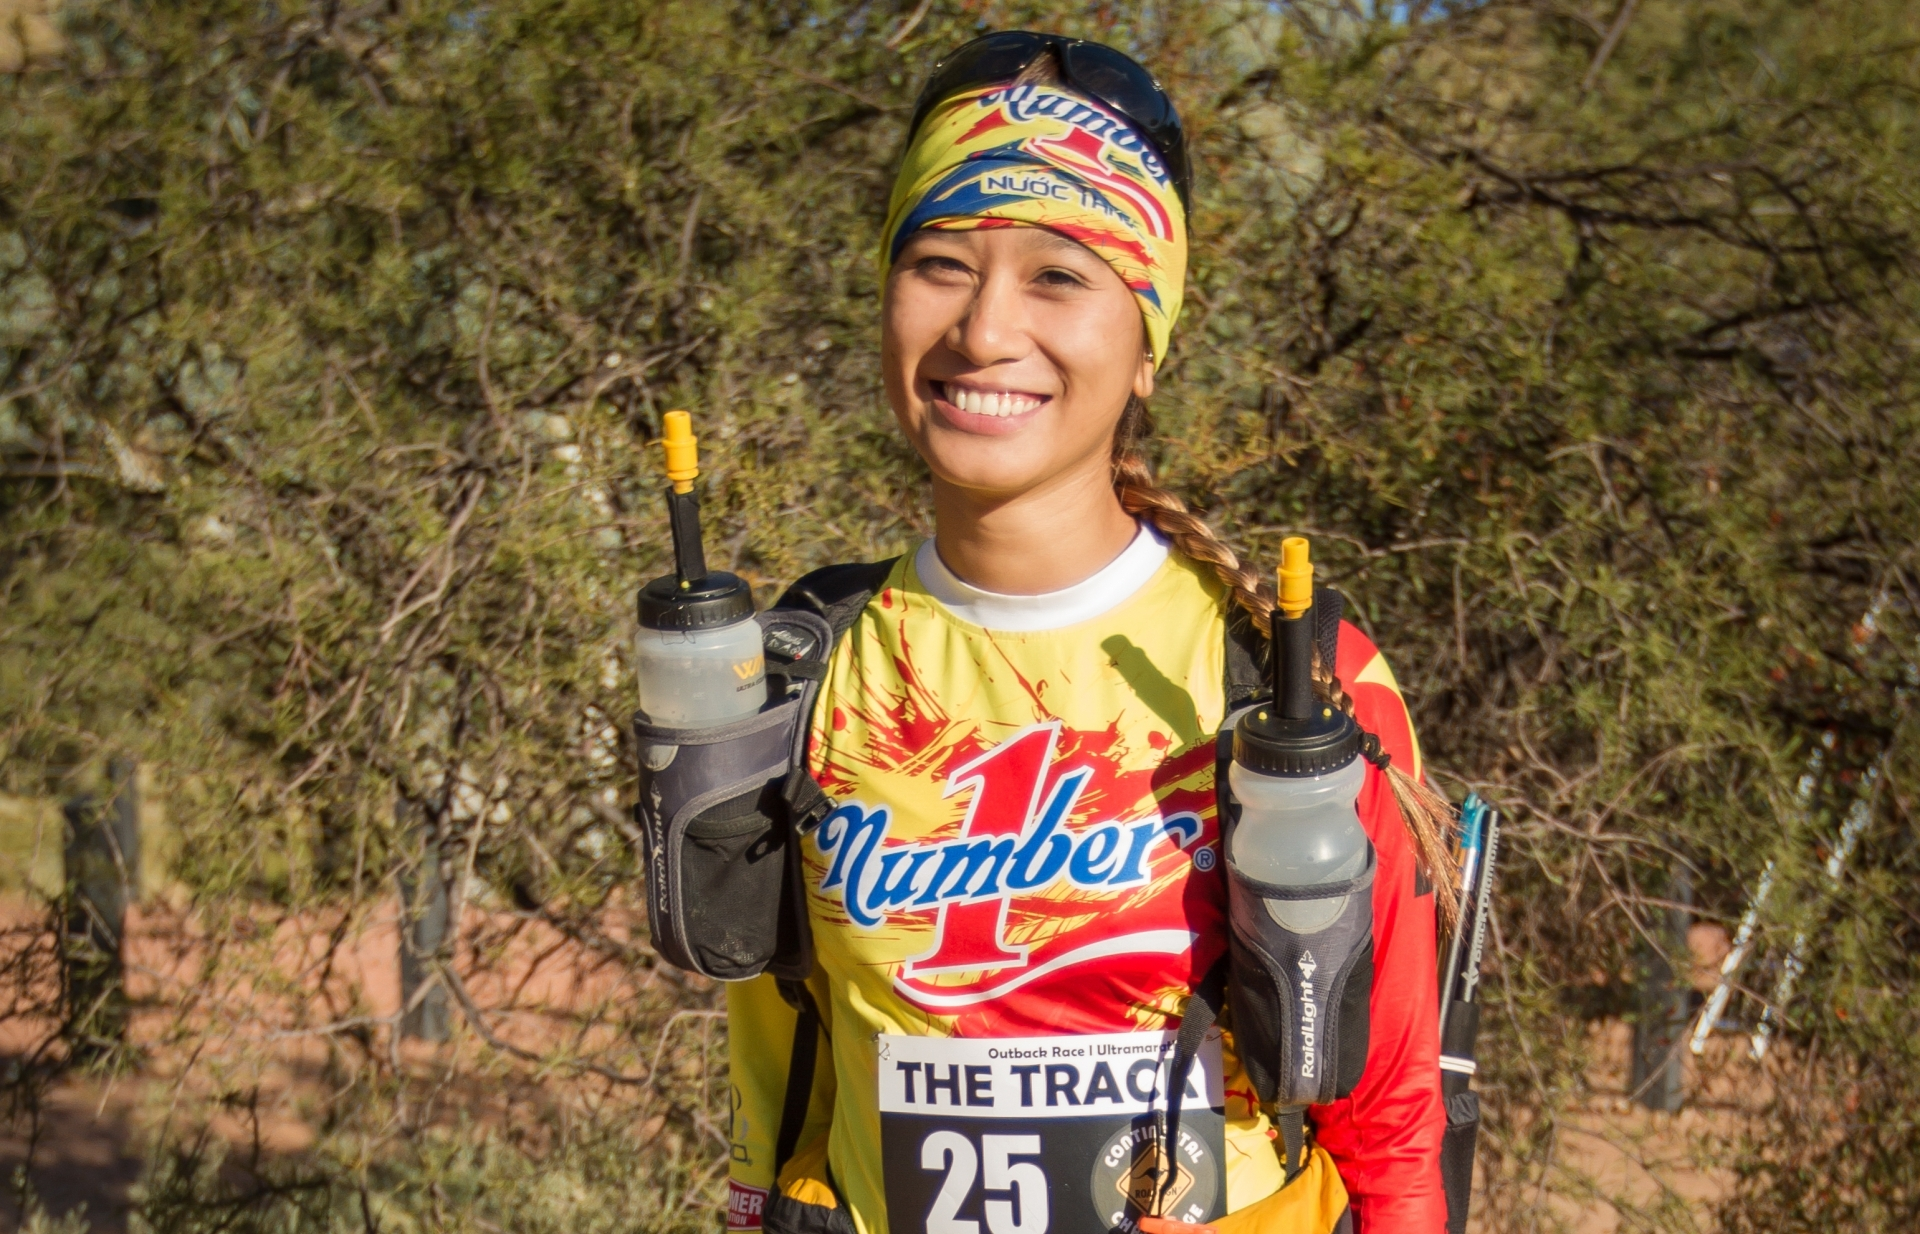 Determination makes champions, says young adventurer Vu Phuong Thanh